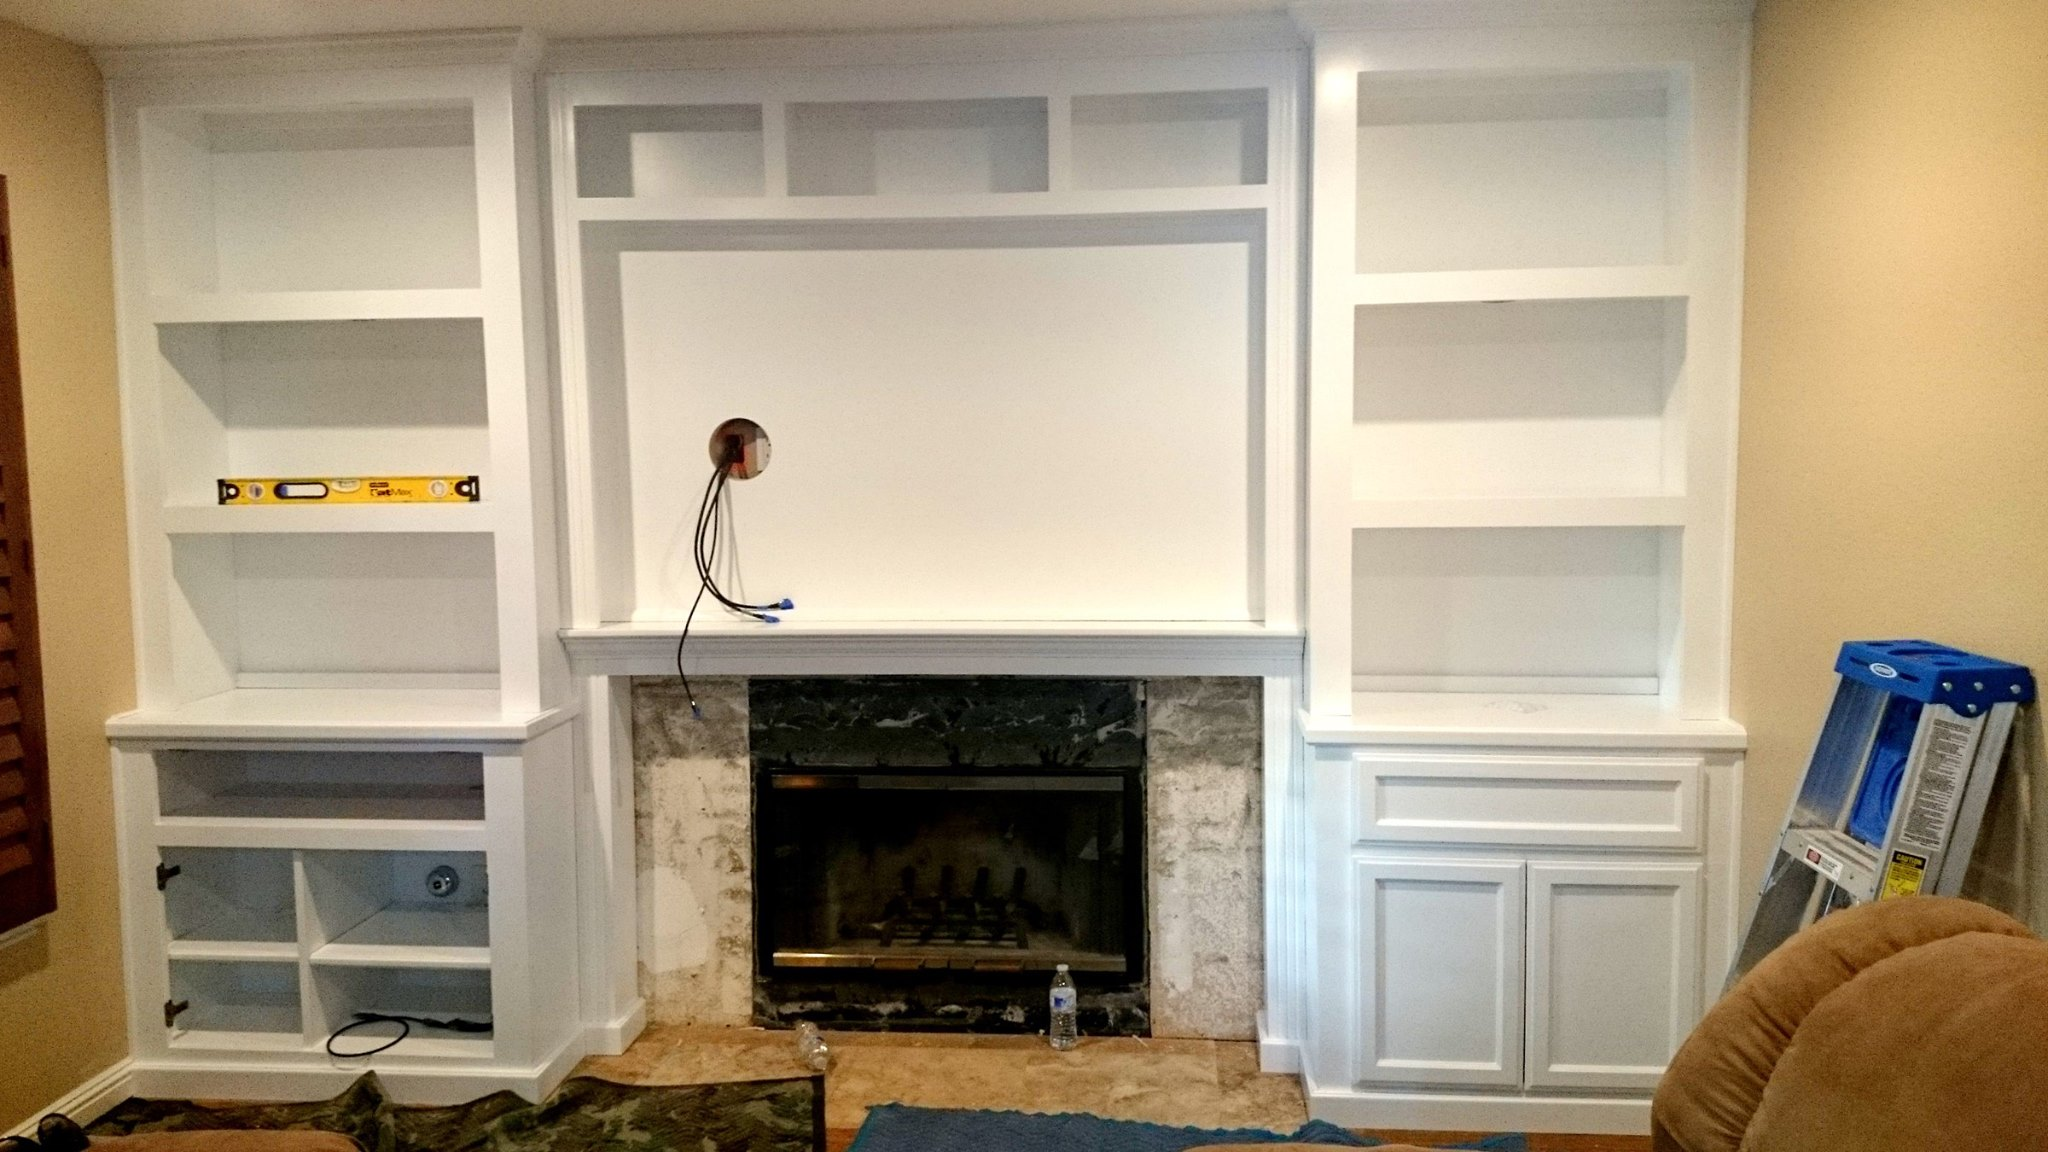 Fireplace wall unit with bookcases in white lacquer